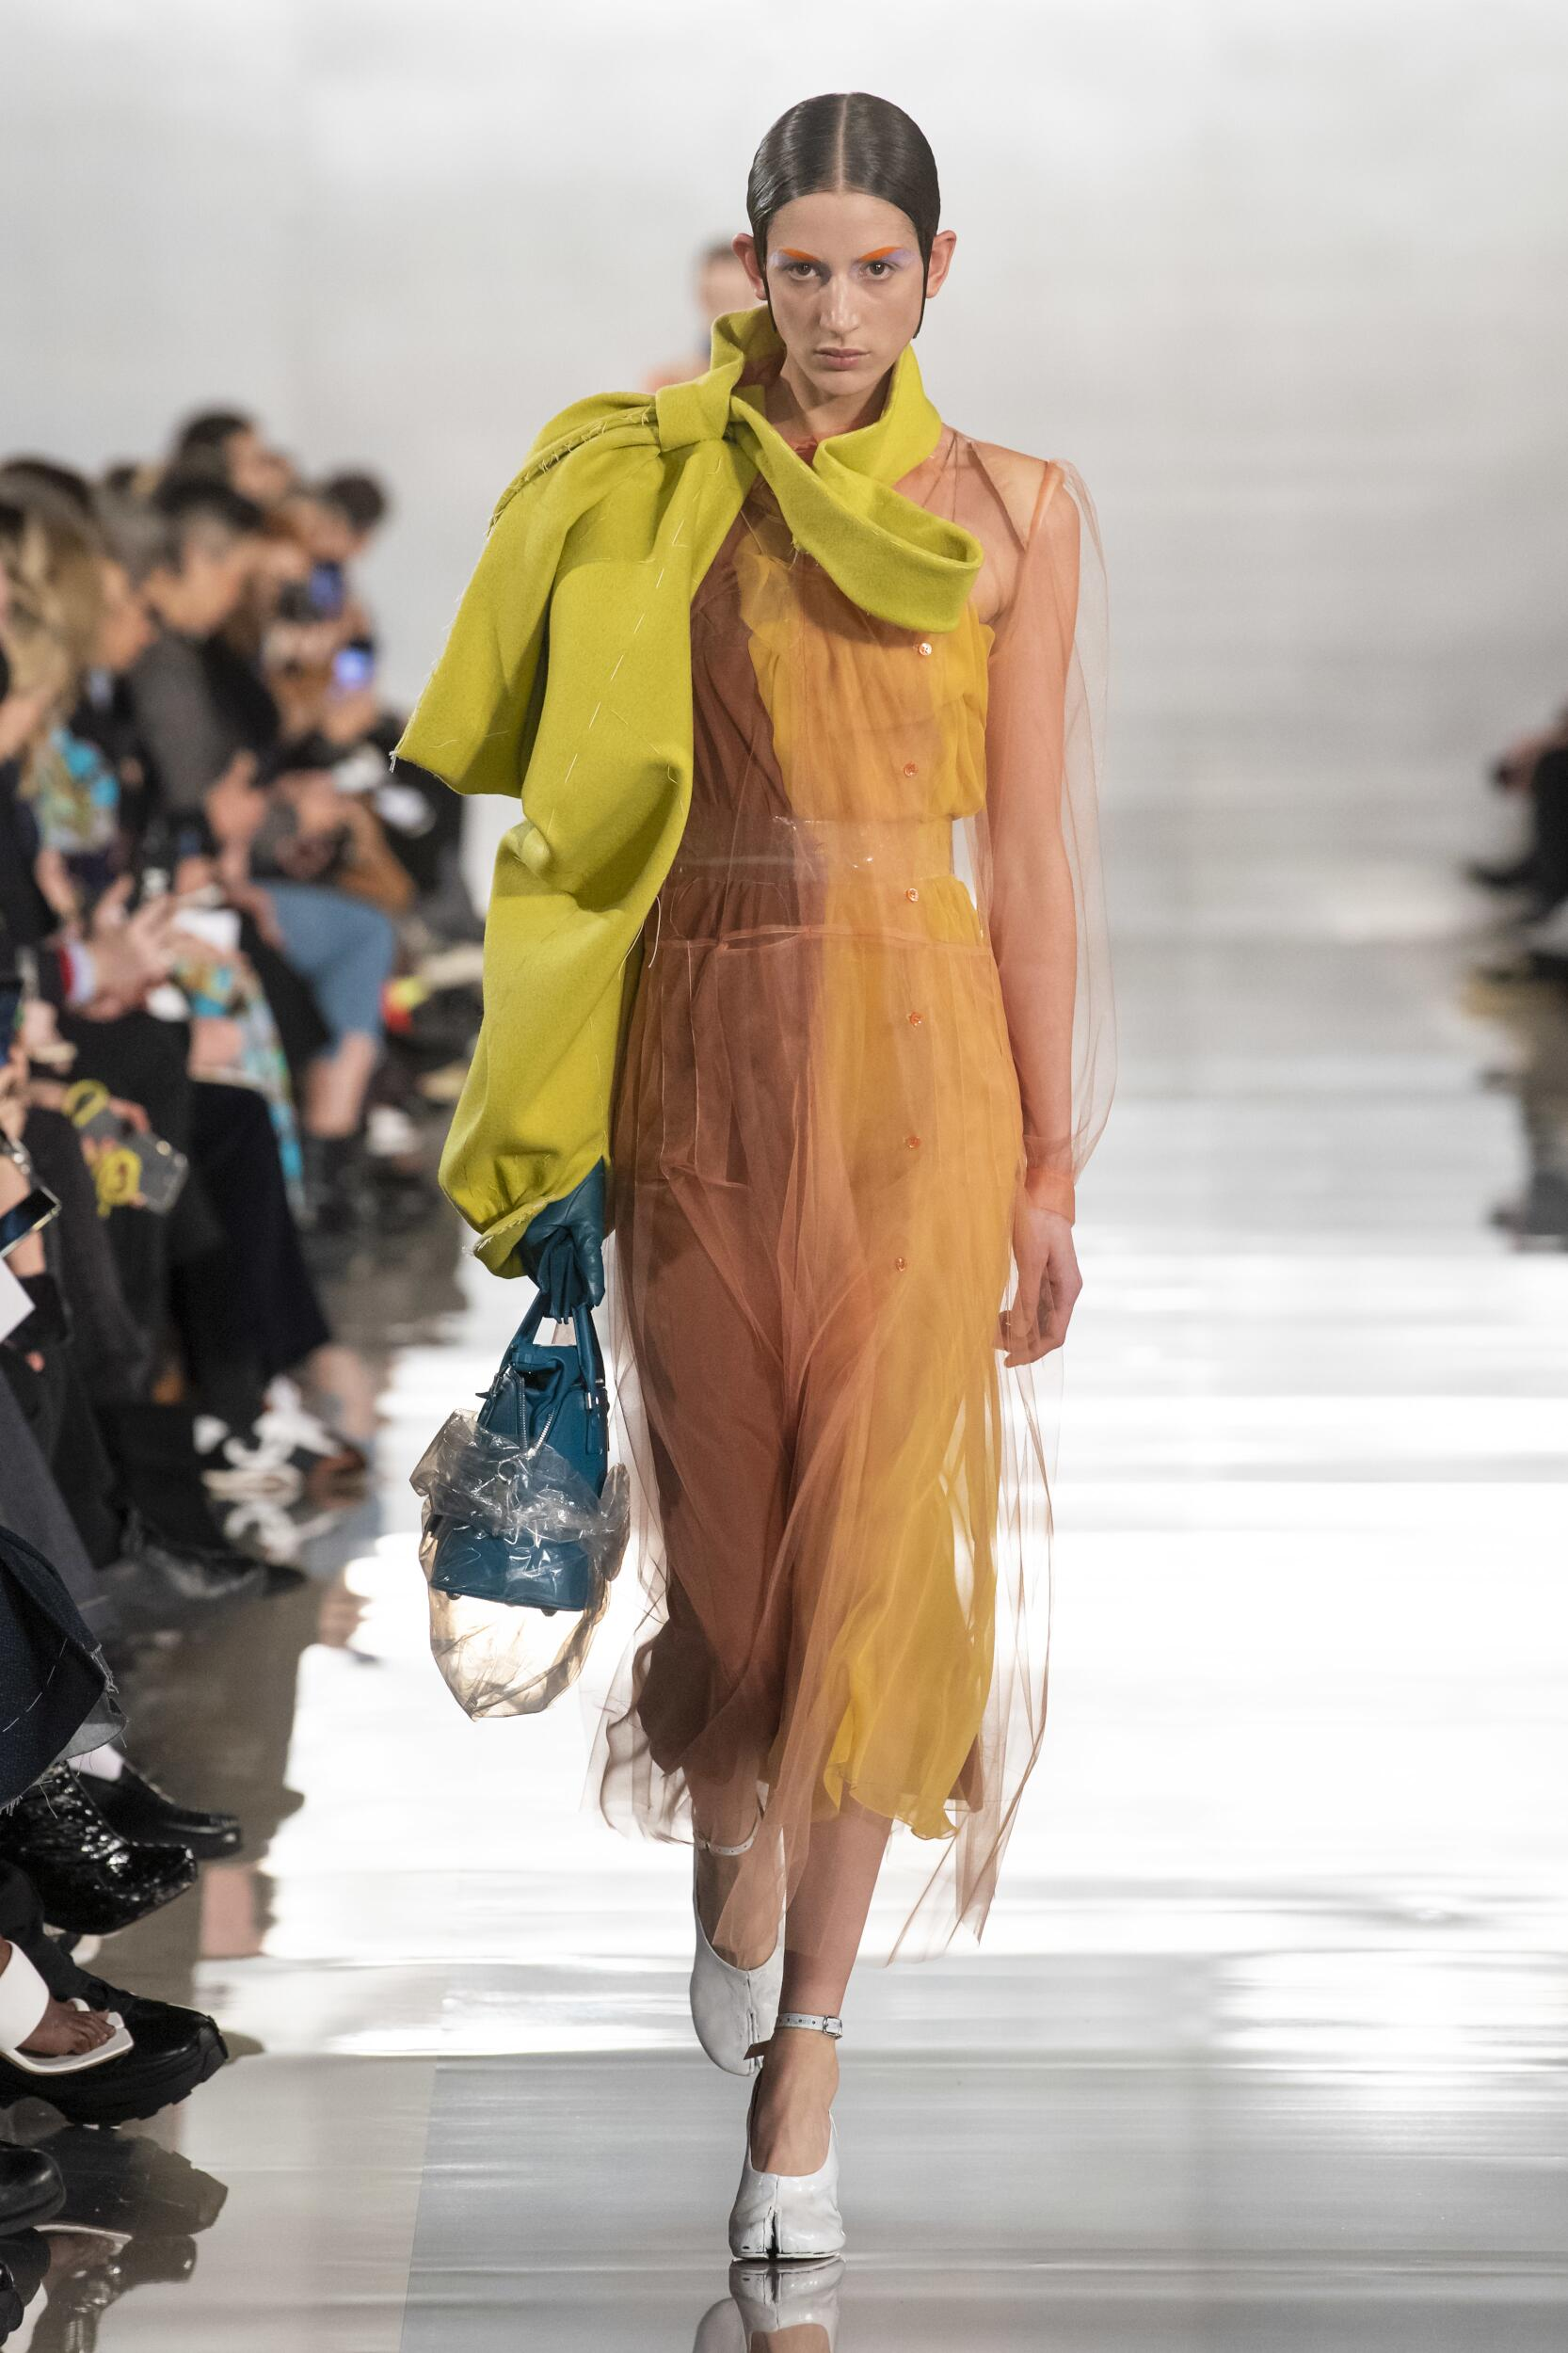 FW 2020-21 Maison Margiela Fashion Show